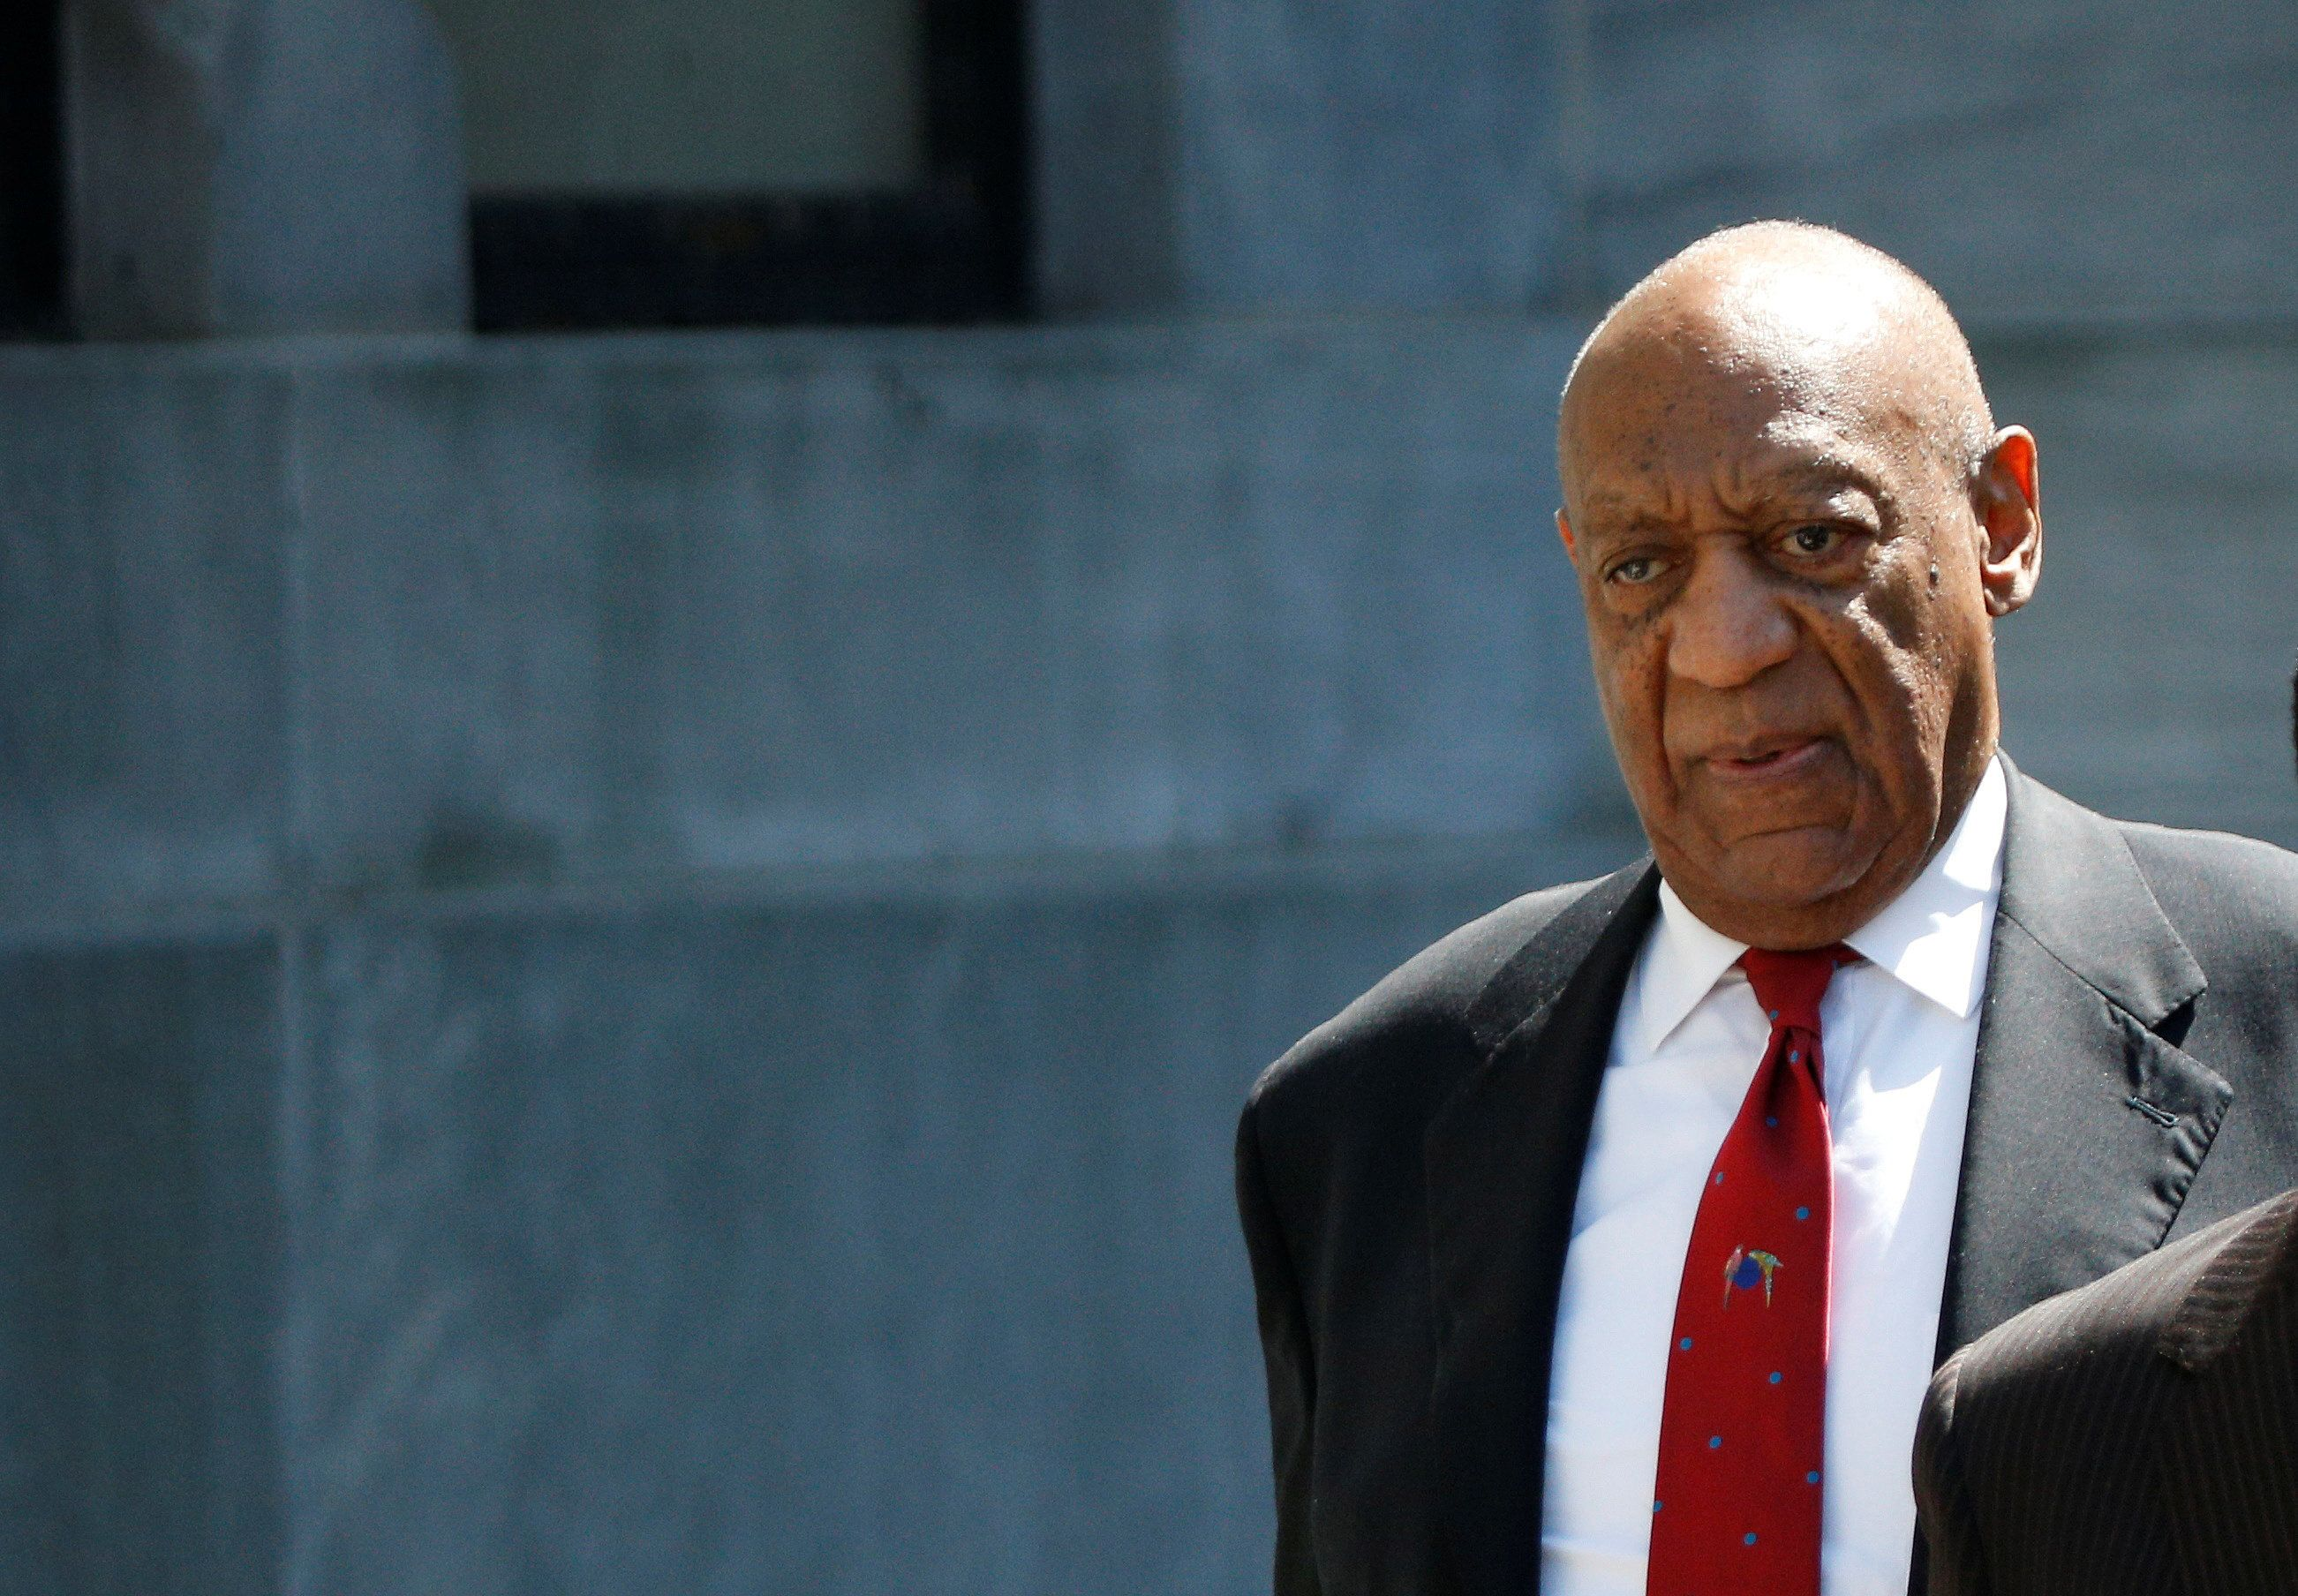 Actor and comedian Bill Cosby exits Montgomery County Courthouse after a jury convicted him in a sexual assault retrial in Norristown, Pennsylvania, U.S., April 26, 2018. REUTERS/Brendan McDermid